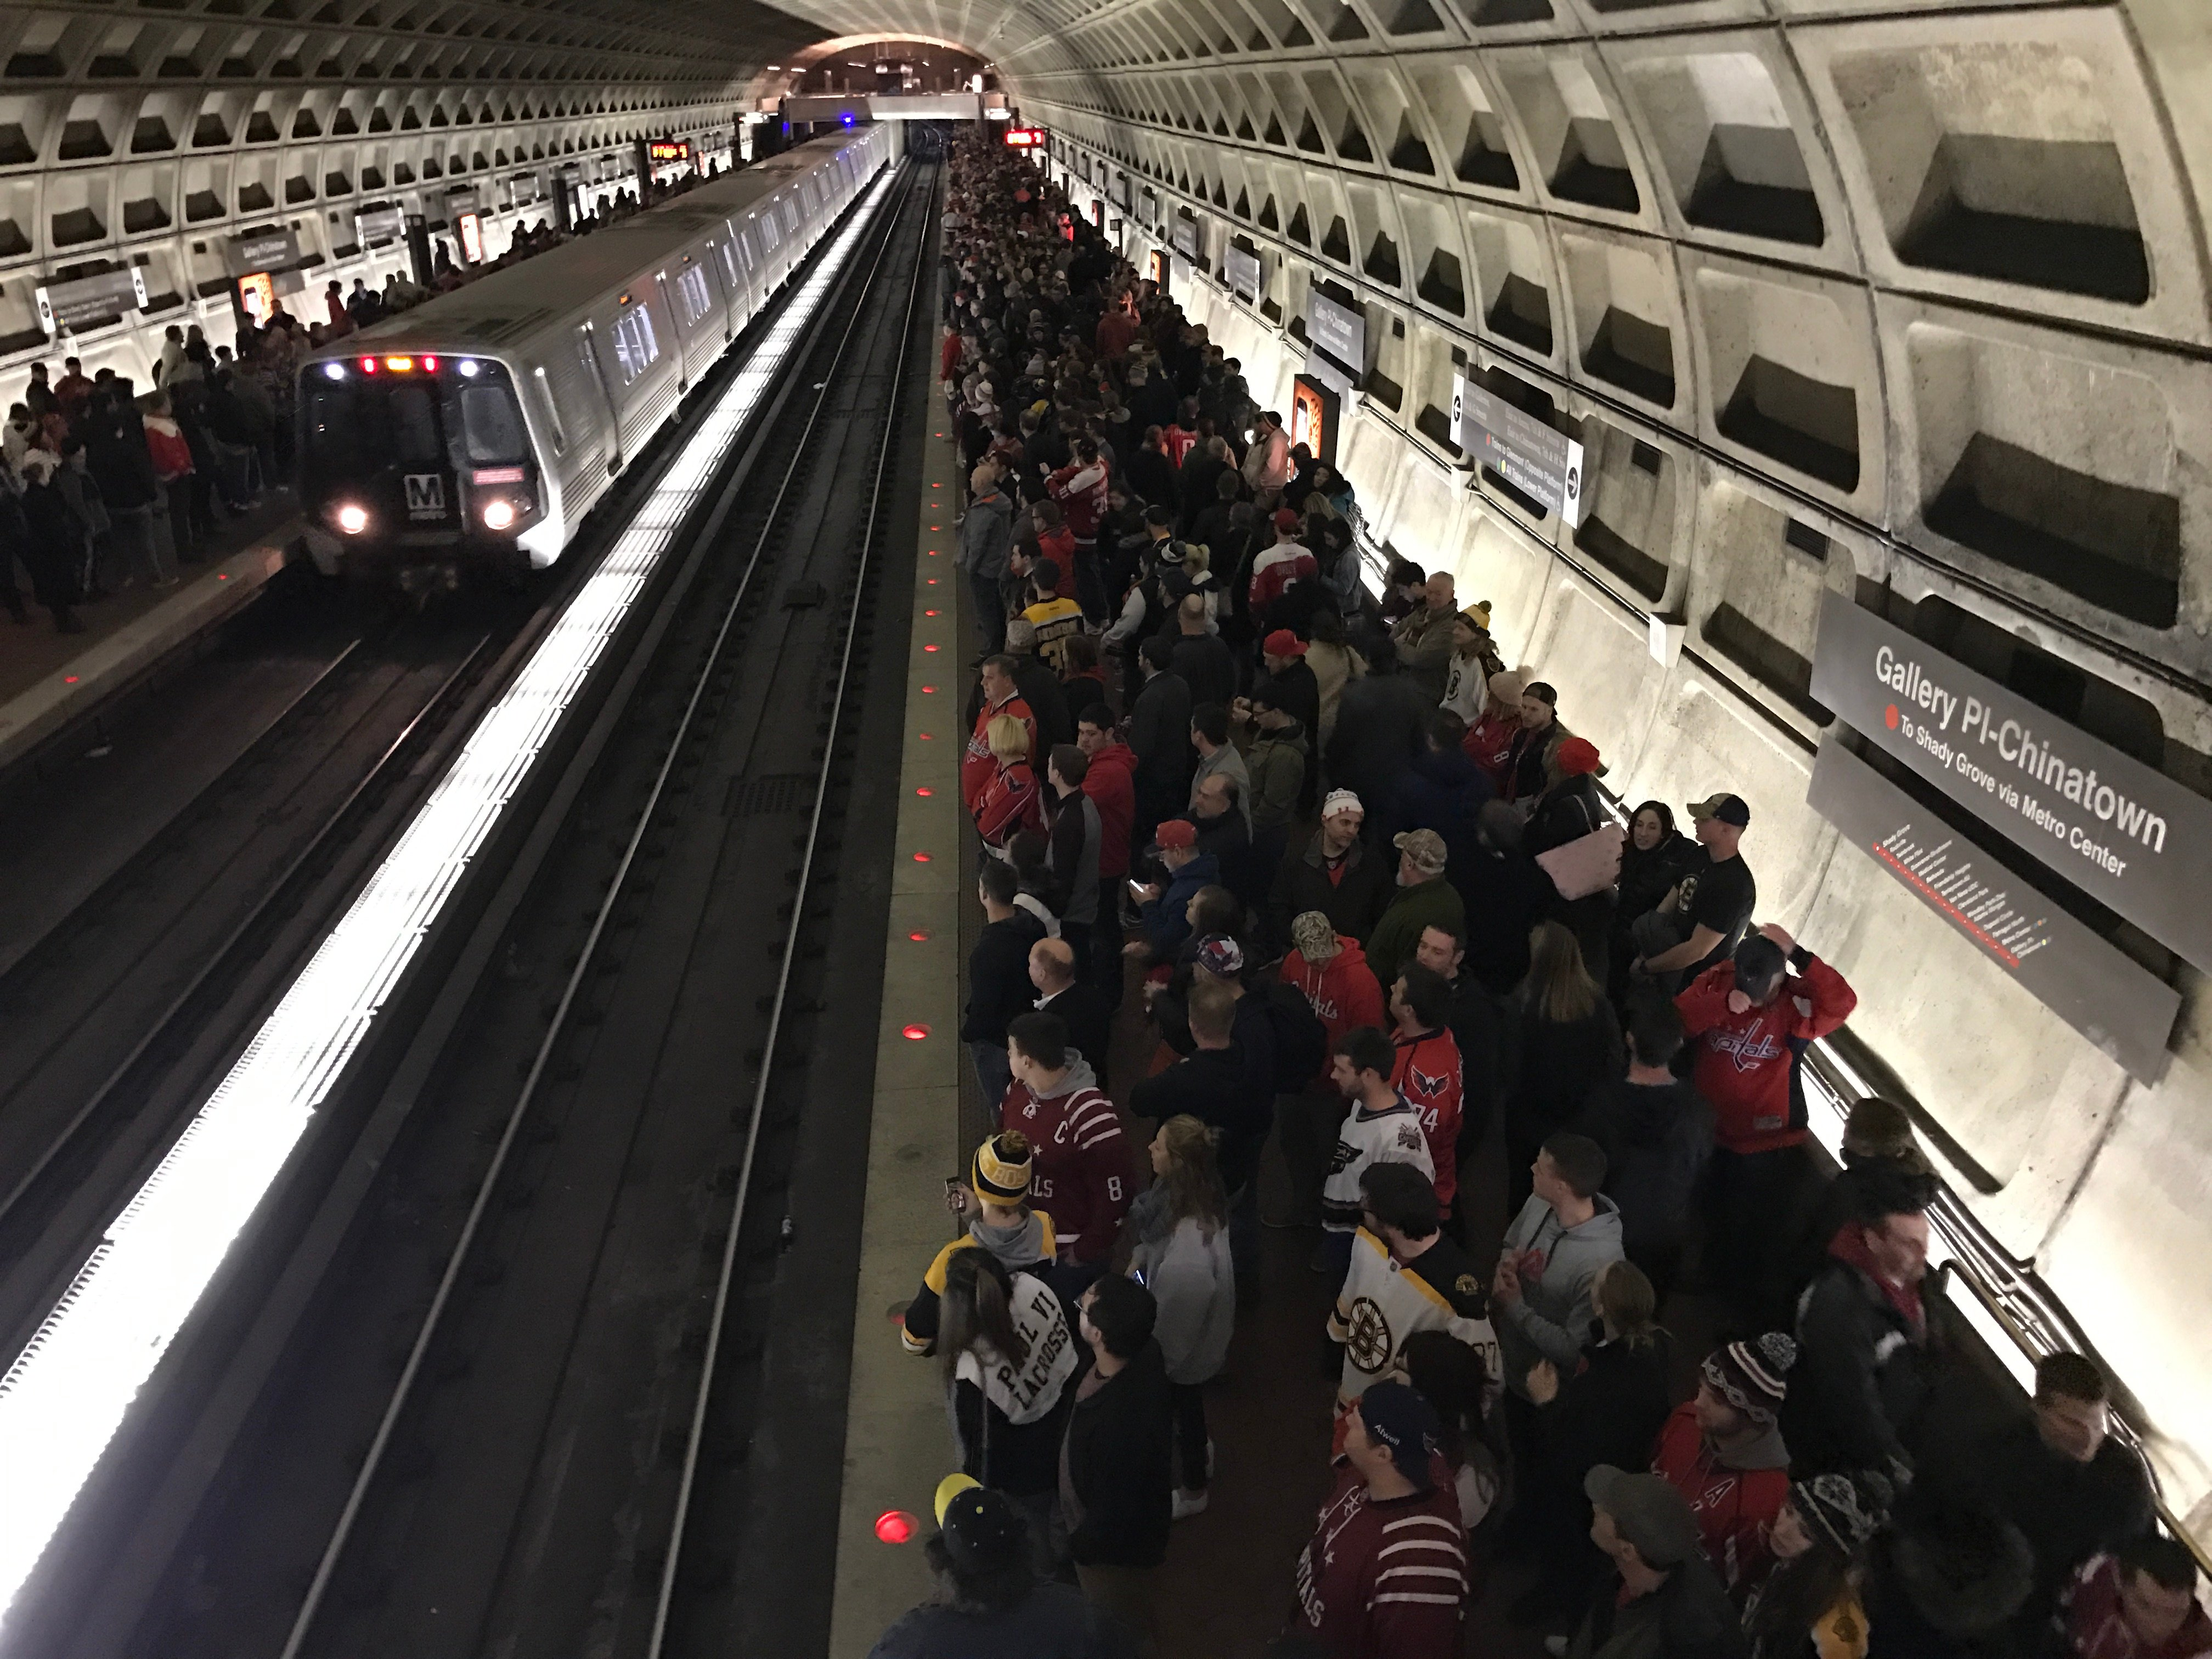 Hockey fans of the Washington Capitals team wait for a metro on February 1st, 2017 after a game at the Verizon center stadium. (Photo: DANIEL SLIM/AFP/Getty Images)